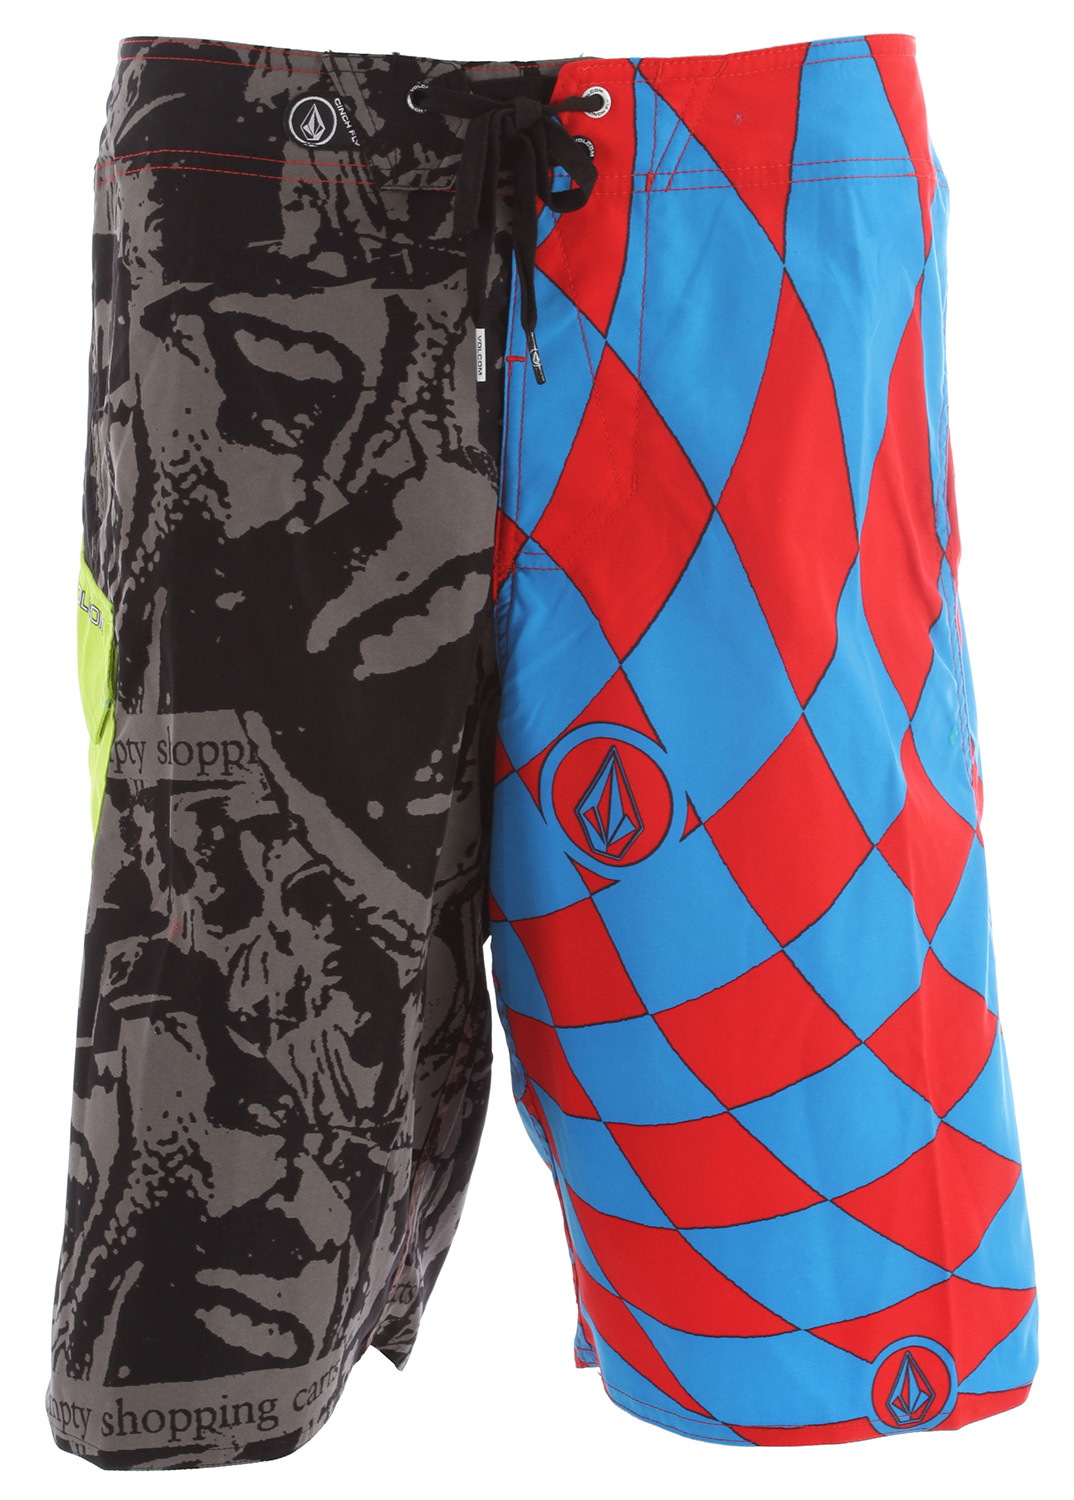 "Surf Key Features of the Volcom Maguro Paradox Boardshorts: 22"" outseam boardshort Volcom 2 way stretch Rubber circle stone Right let and left leg are different prints Contrast side flap pocket Embroidered eyelet on pocket Cinch Fly technology 100% polyester 2 way mechanical stretch - $49.50"